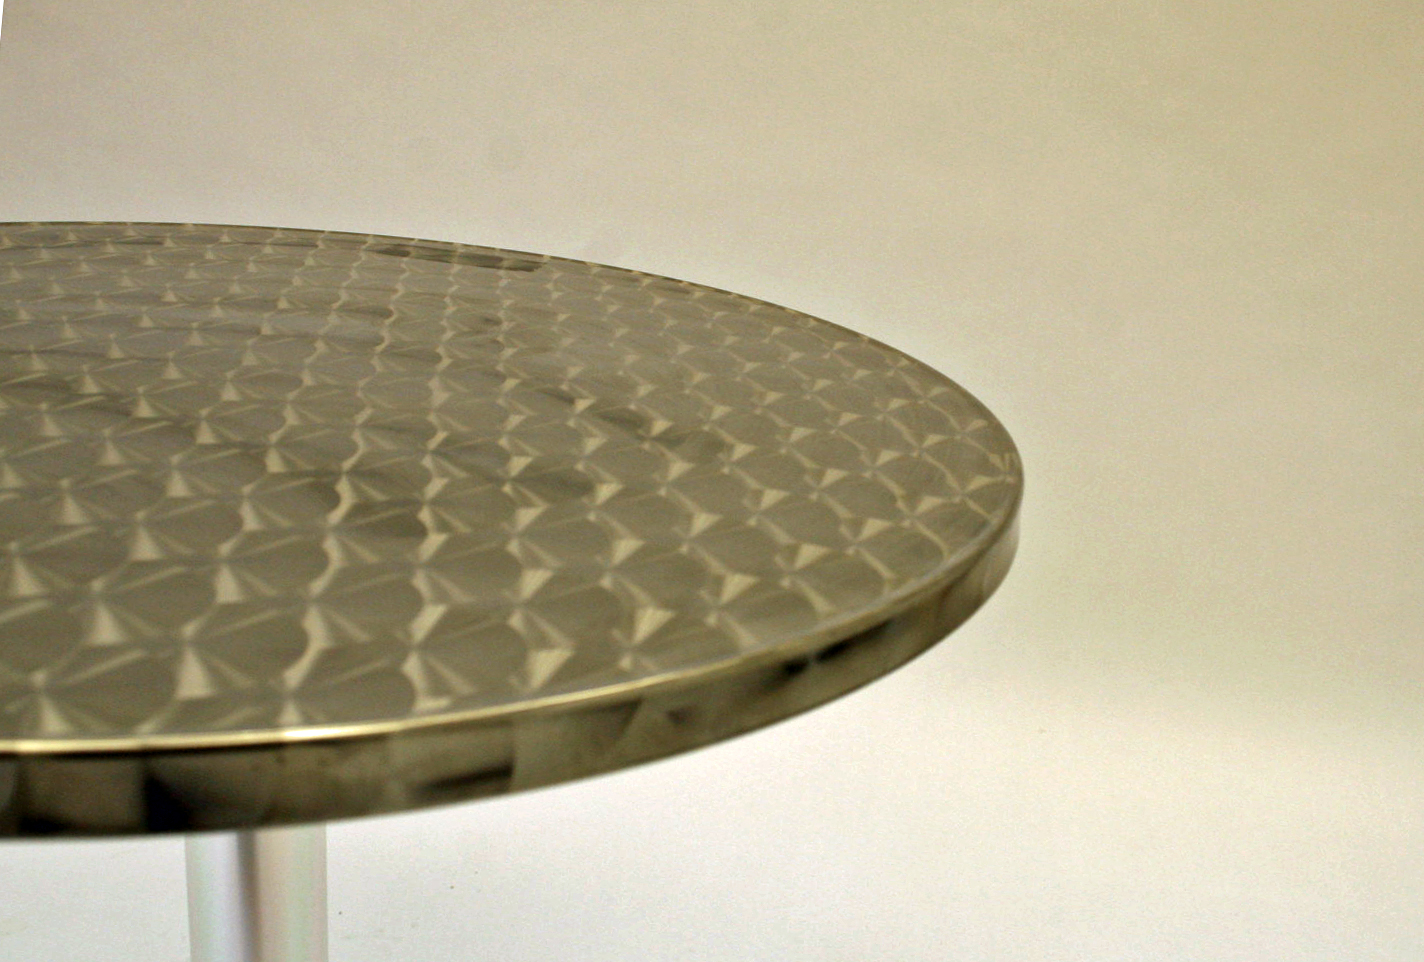 2' Diameter (60cm) Aluminium fully weatherproof table with a rolled edge - BE Event Hire